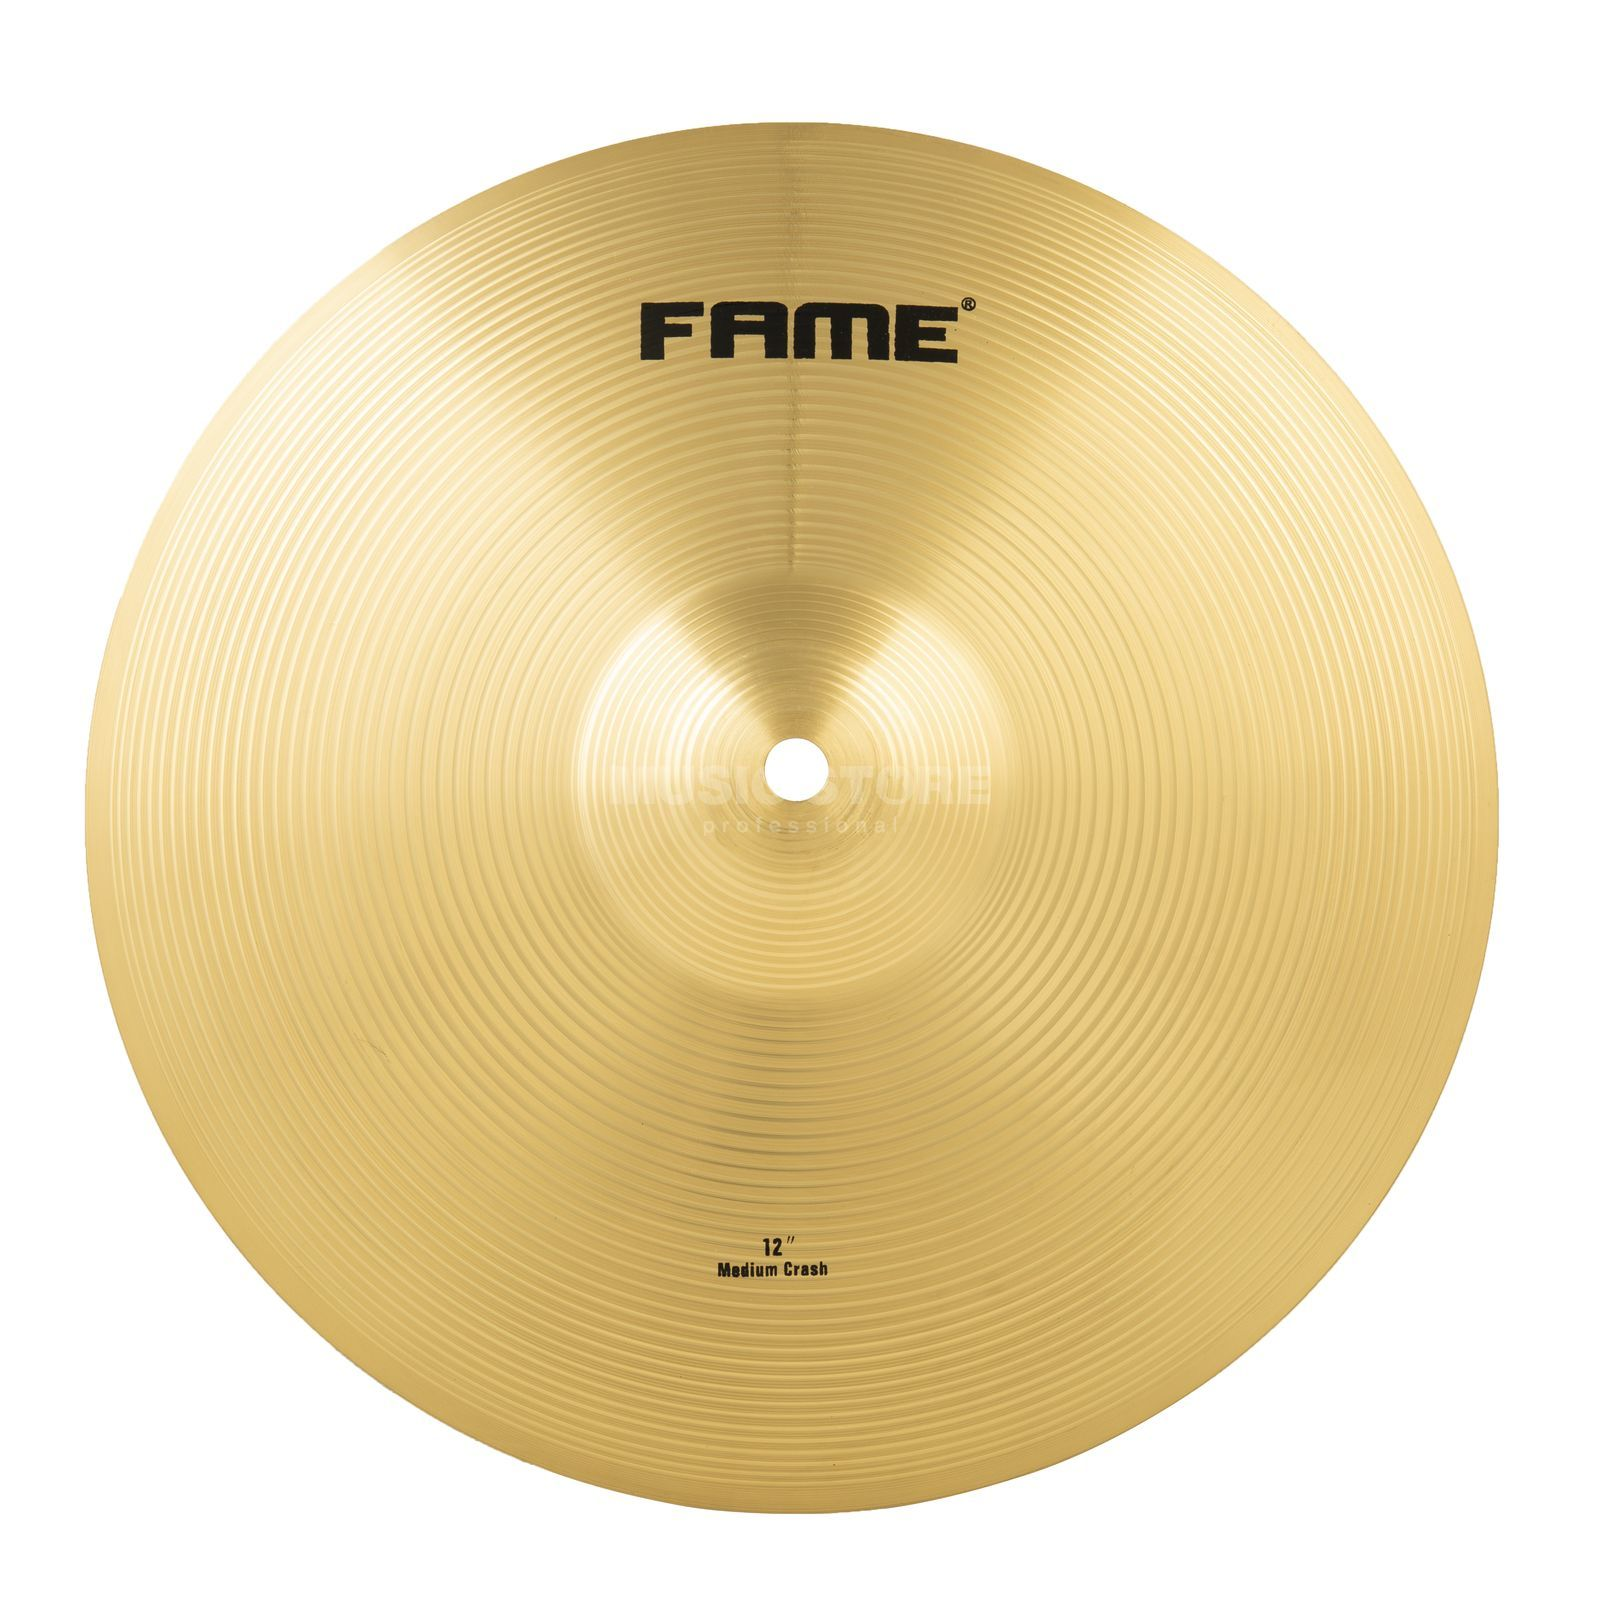 "Fame Starter Crash 12"", Brass Product Image"